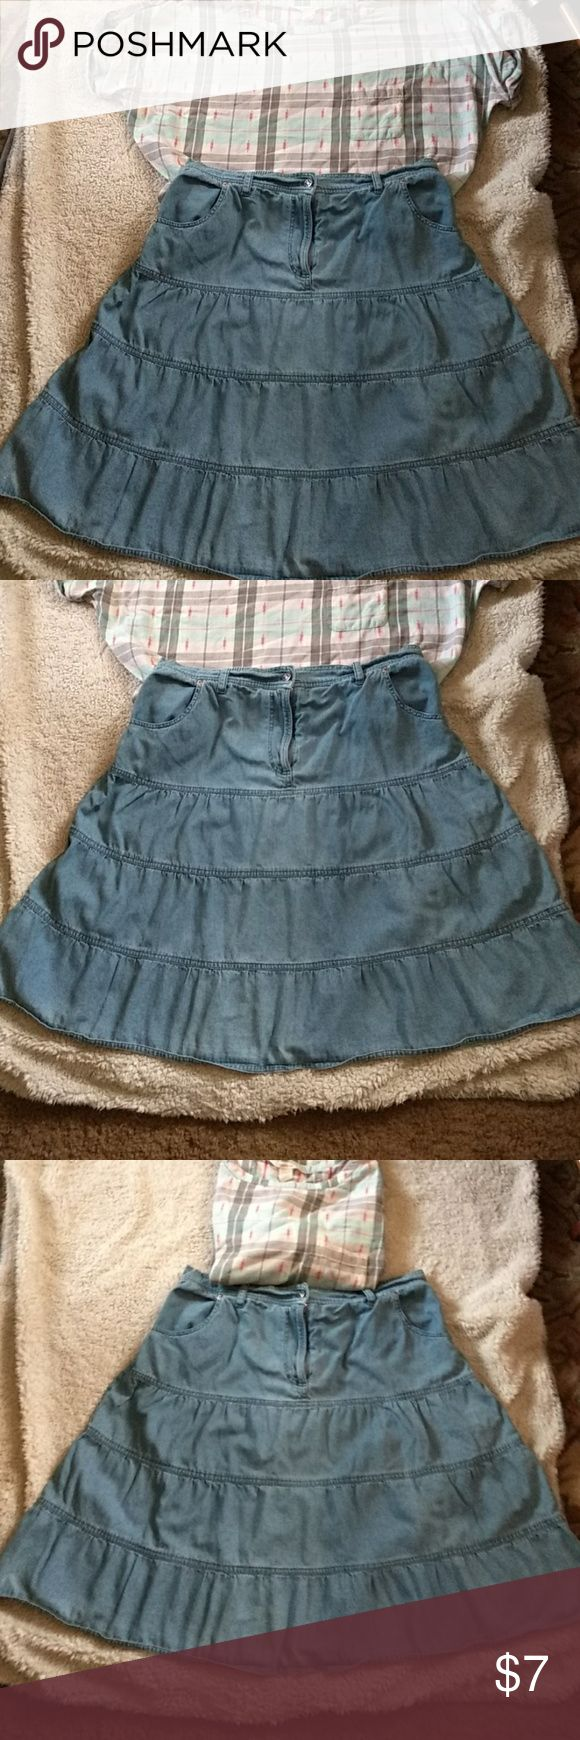 Blue jean skirt Light wash blue jean skirt. Seam layers for teir look. 100 %cotton.  Button and zip front amd 2 front pockets  Elastic band in back of waist. Xl. Paired nice with plaid shirt(sold seperate.) Southwest canyon Skirts Mini